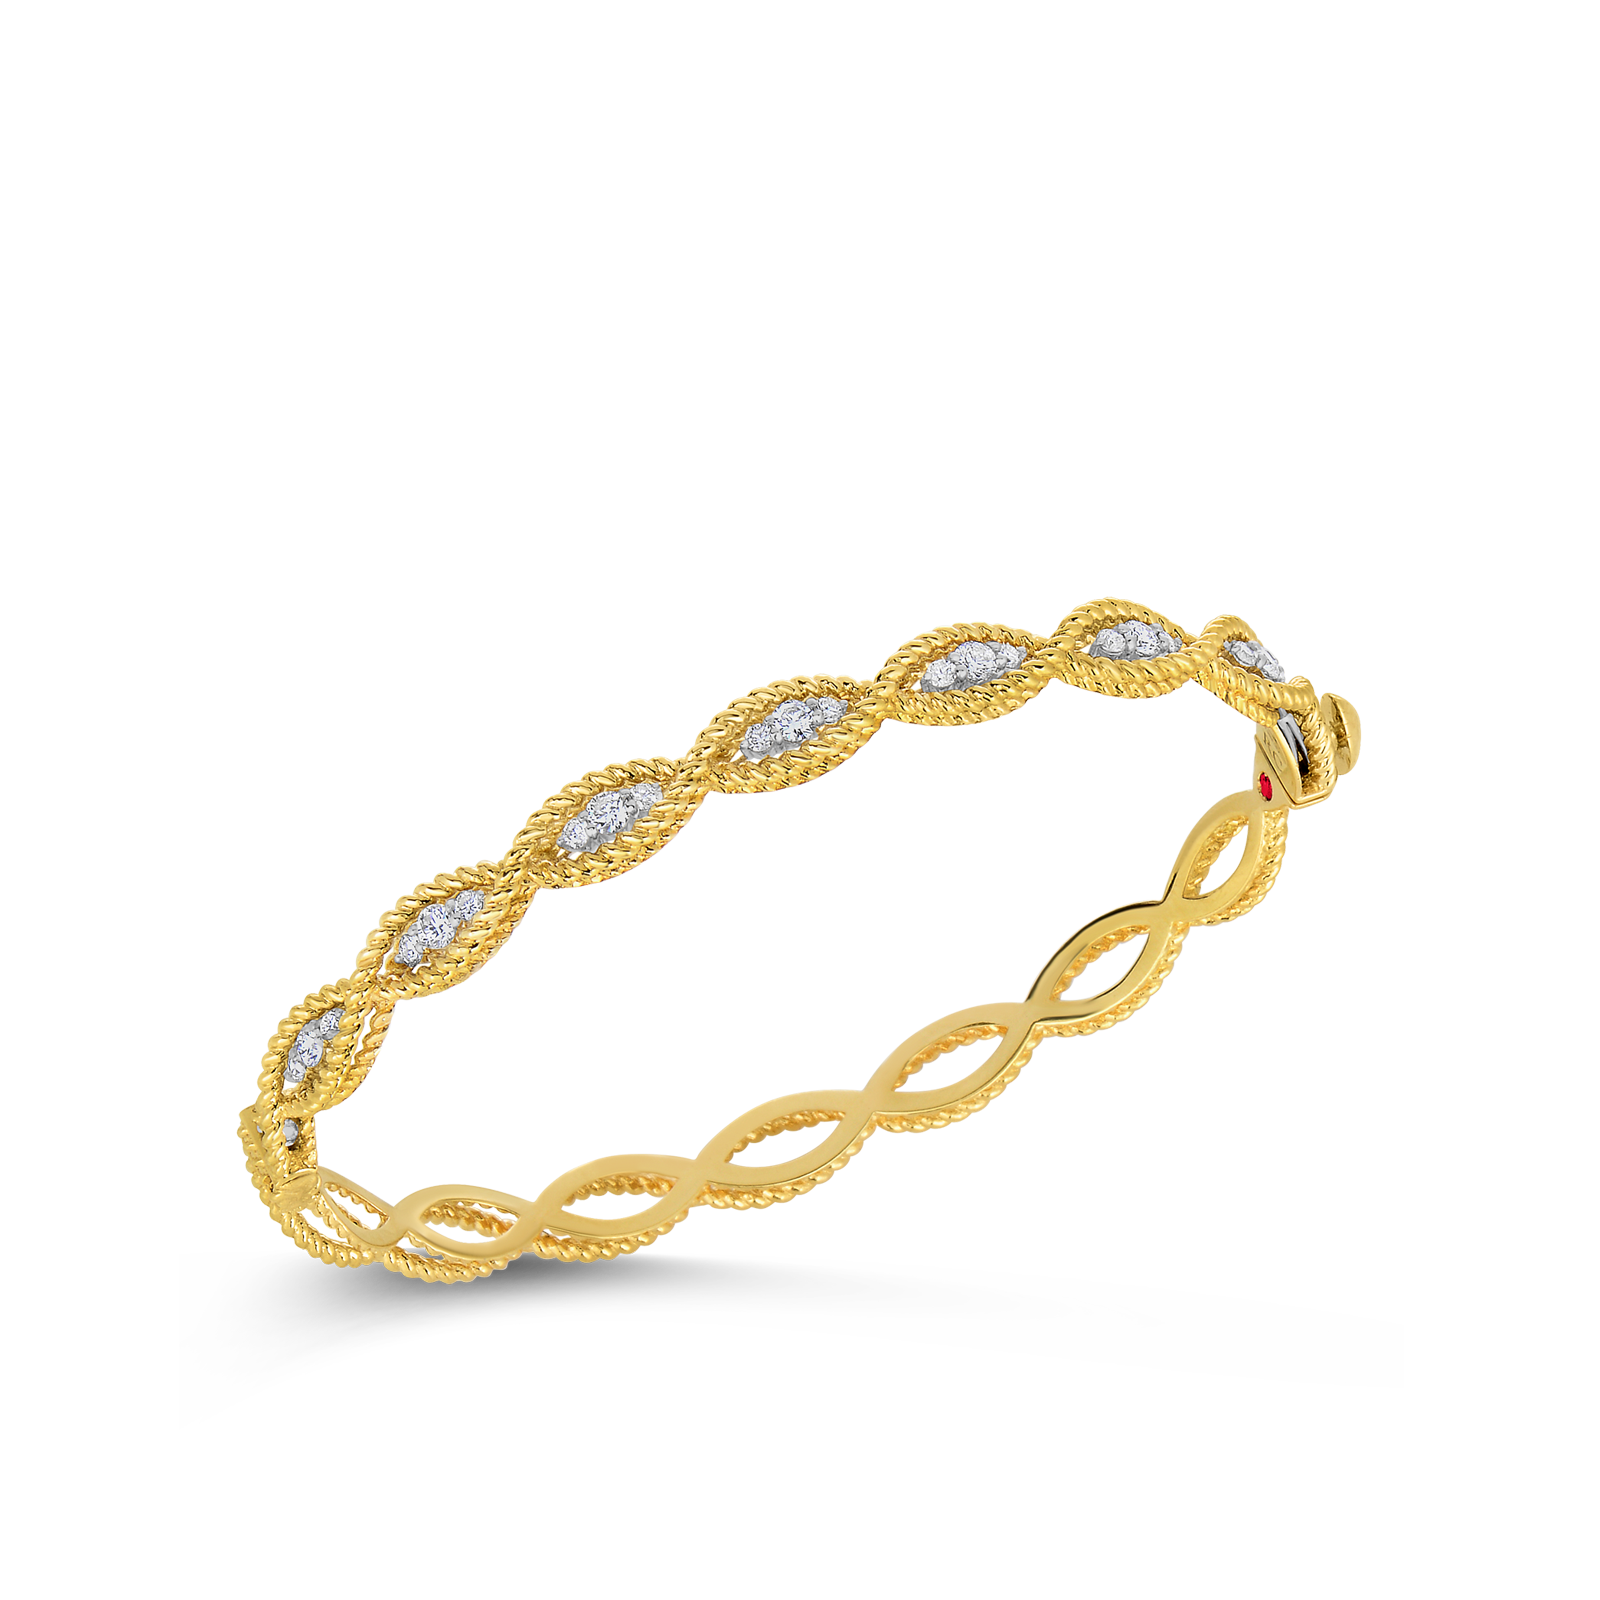 jewellery kempu real buy bracelet type handcrafted vanya bangles exquisite products the dipped gold bangle silver temple